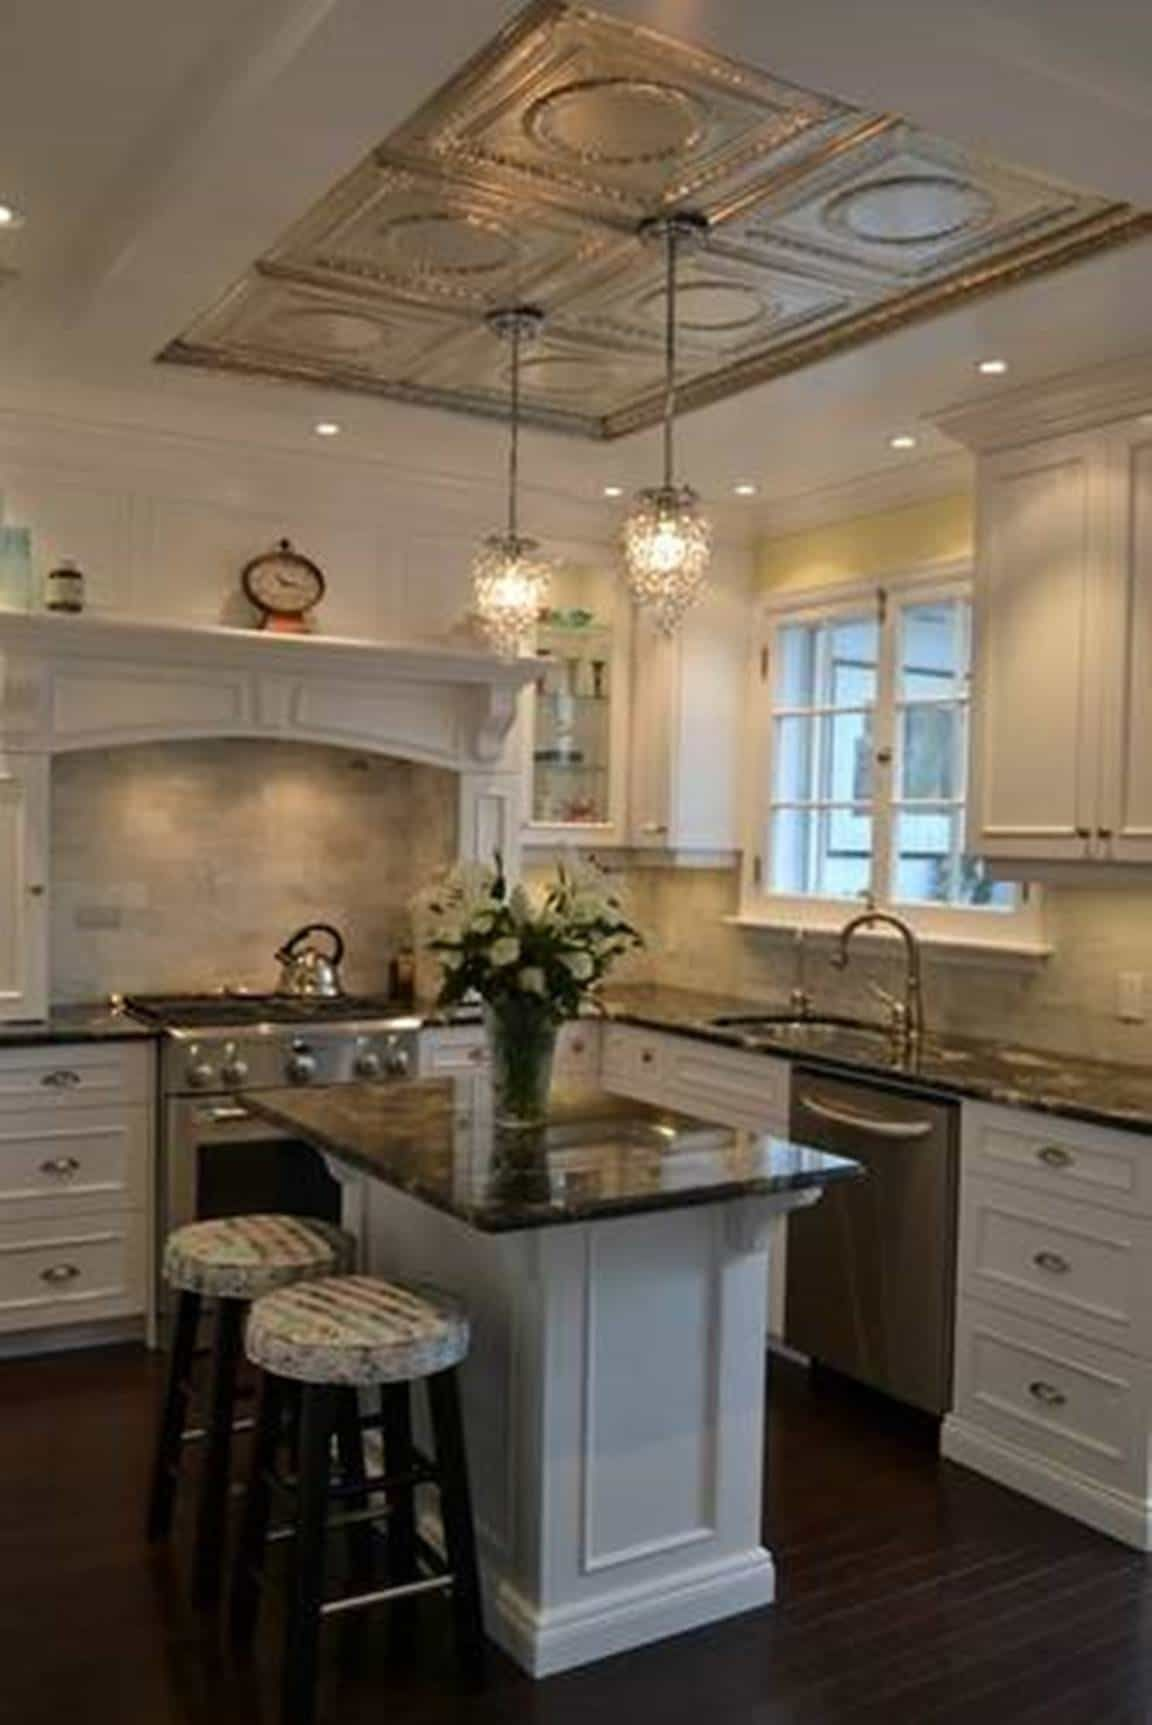 Kitchen Elegant Victorian Style Kitchens Modern Victorian Style Kitchens With Classy Ceiling And Small Pe Victorian Kitchen Kitchen Ceiling Kitchen Remodel